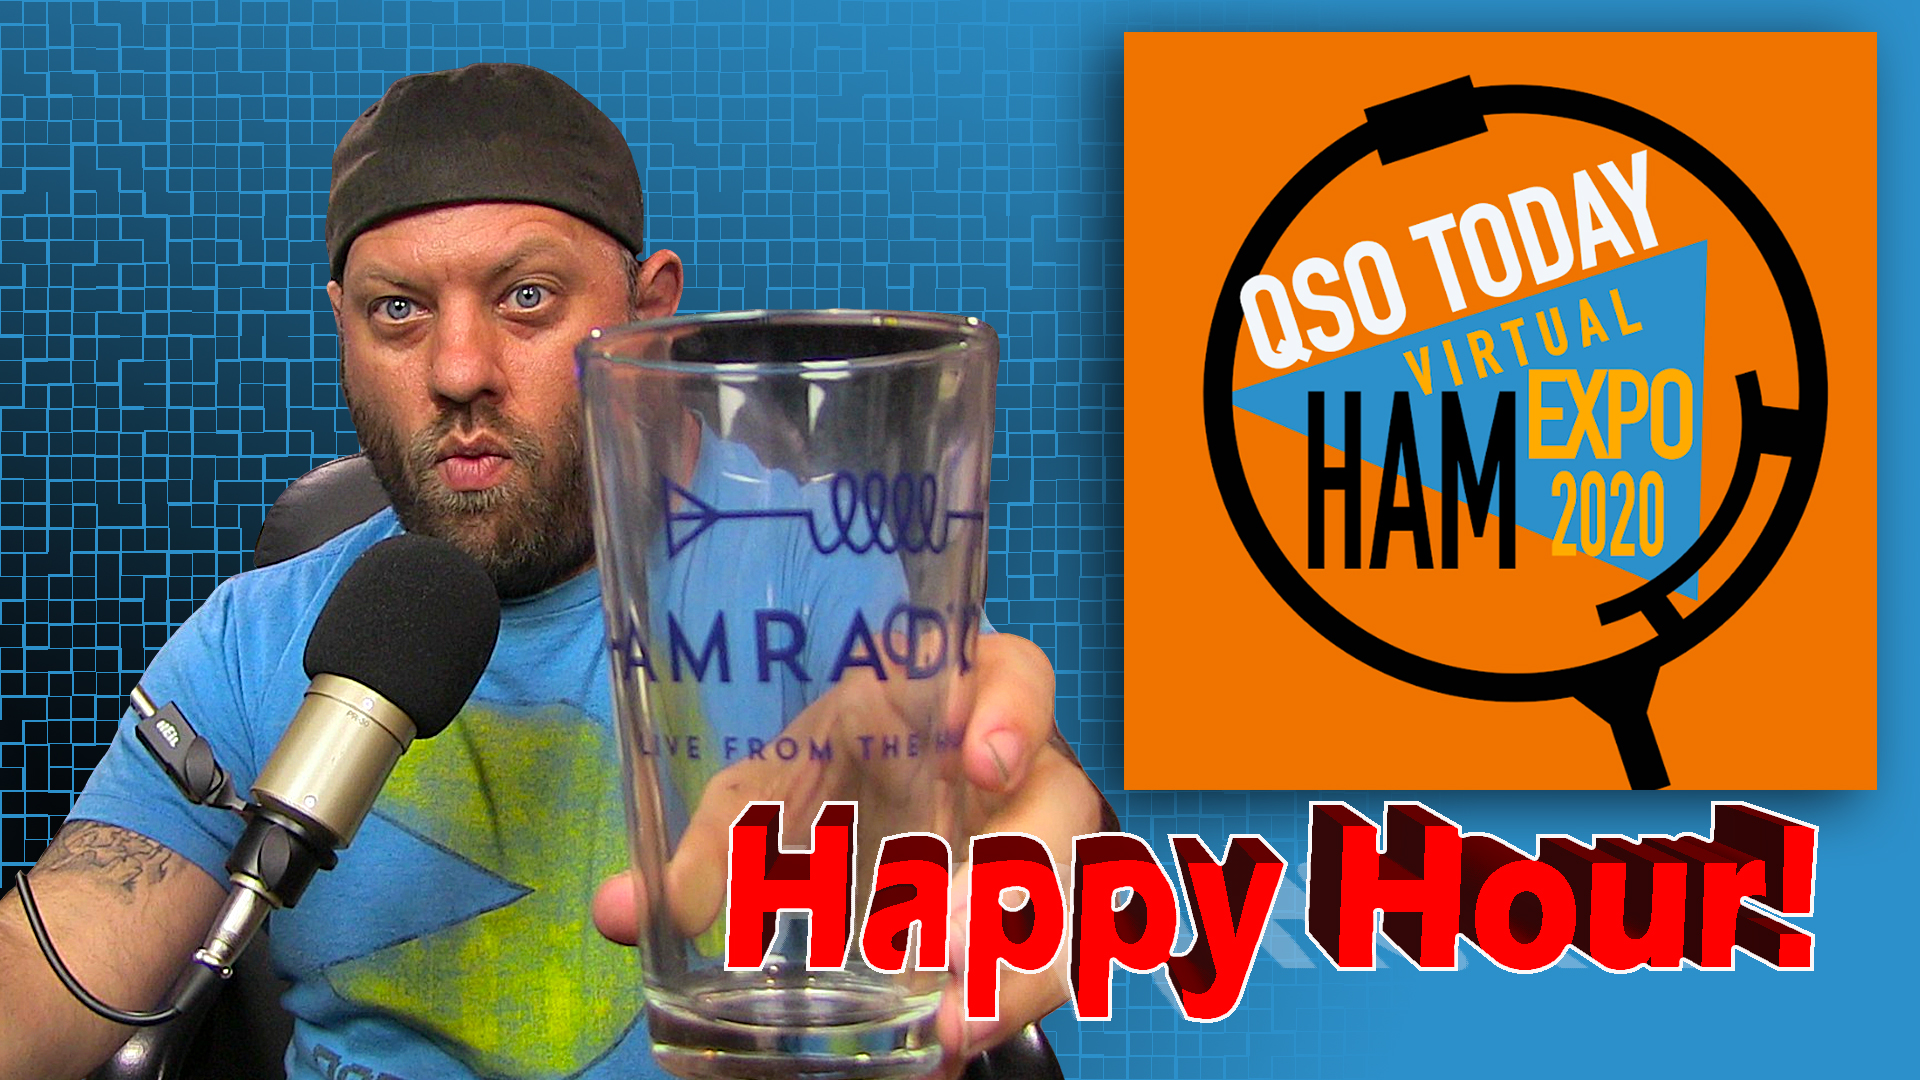 Episode 571: Ham Radio Happy Hour for March 2021 – LIVE from the QSO Today Virtual Ham Expo!